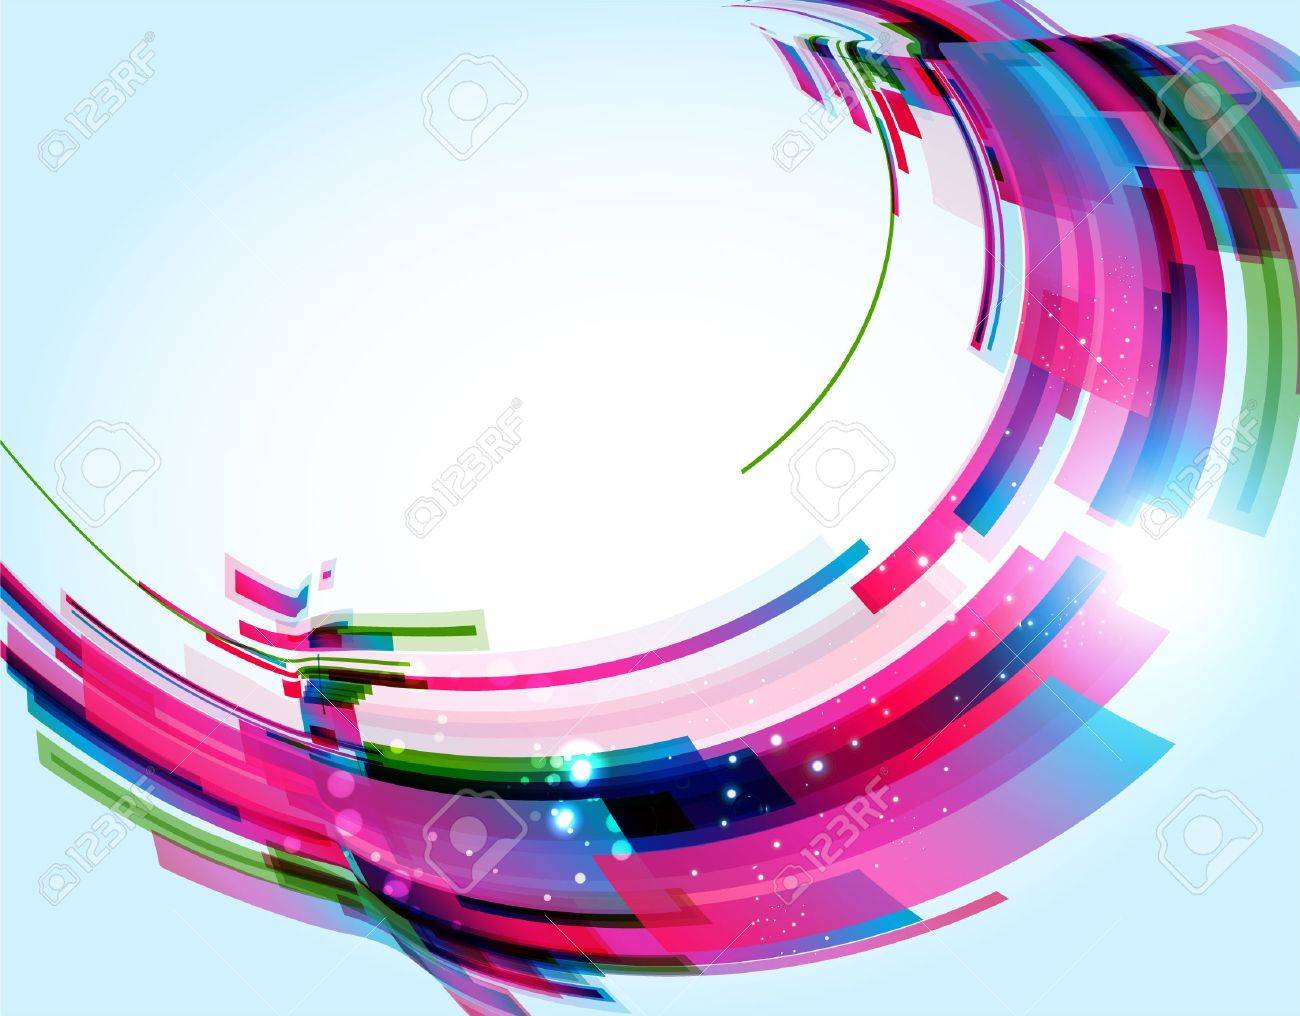 Abstract Background Stock Vector - 9717508